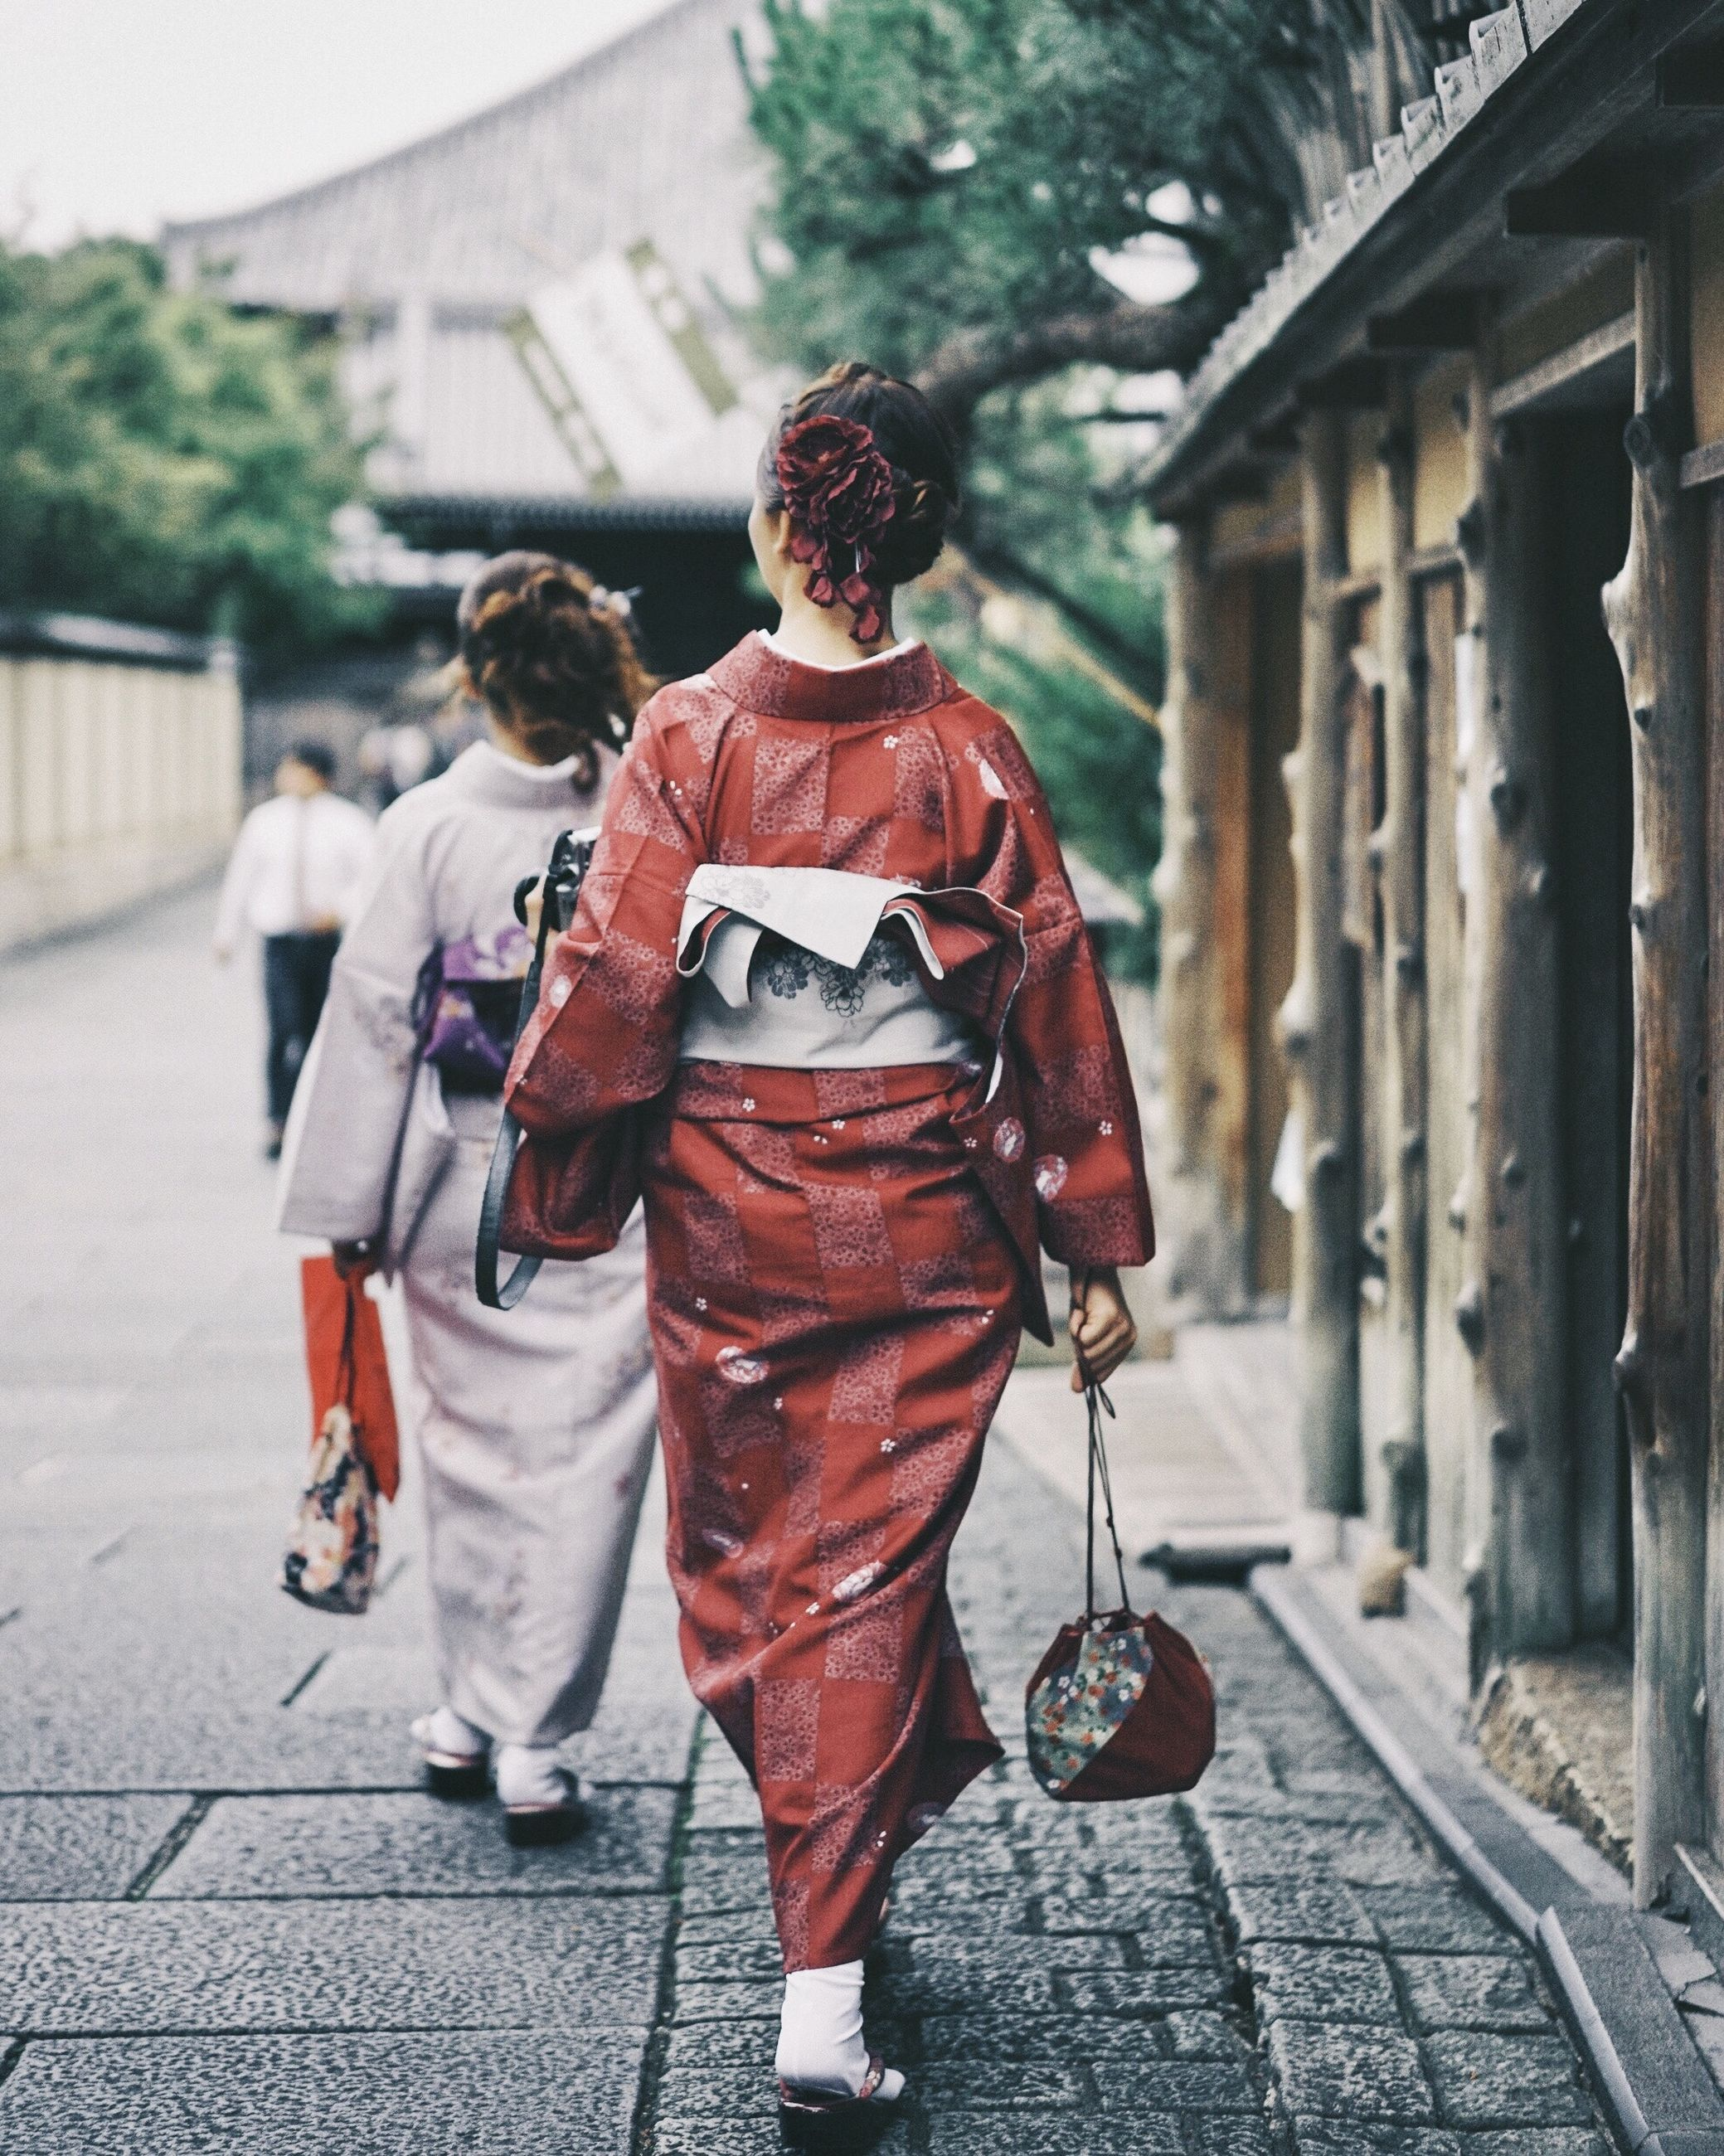 architecture, street, adult, men, road, city, two people, full length, rear view, walking, spring, person, clothing, red, building exterior, built structure, lifestyles, footpath, togetherness, women, outdoors, day, footwear, traditional clothing